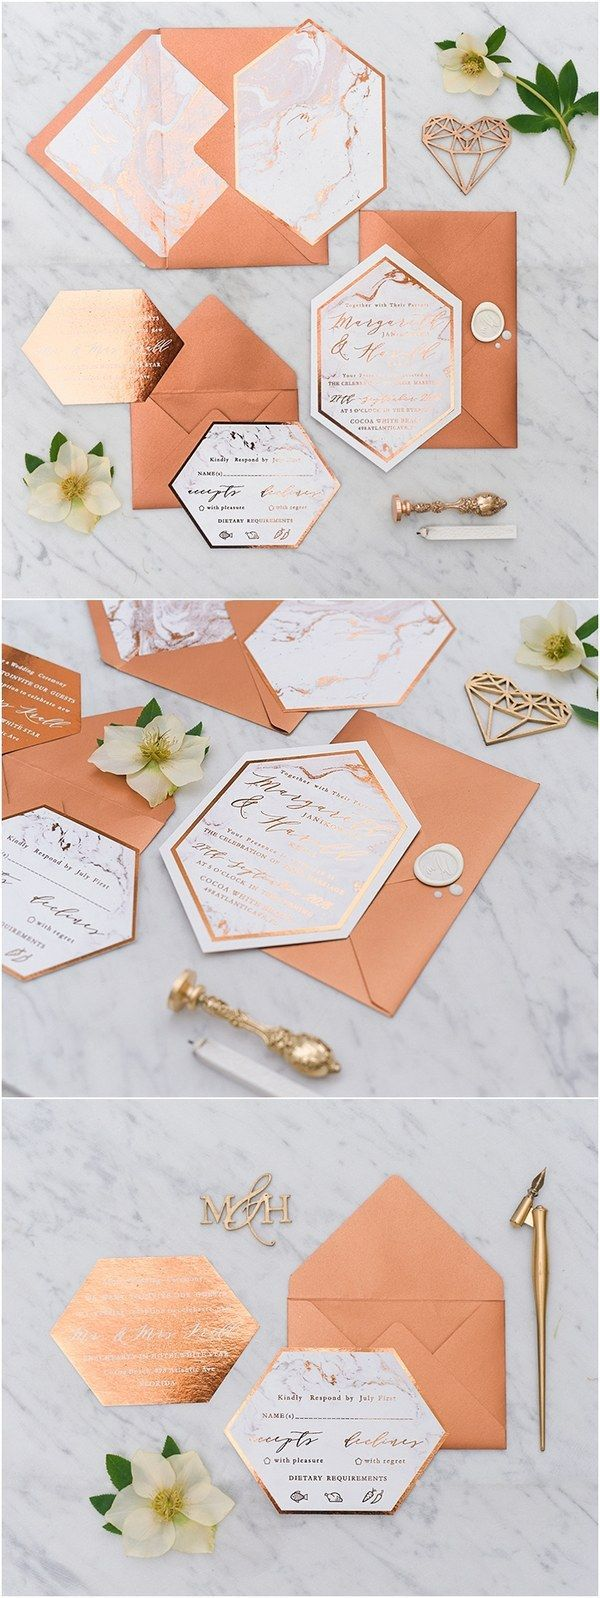 handmade wedding cards ireland%0A Copper and marble glitter wedding invitations    geoc z via  lovepolkadots    http